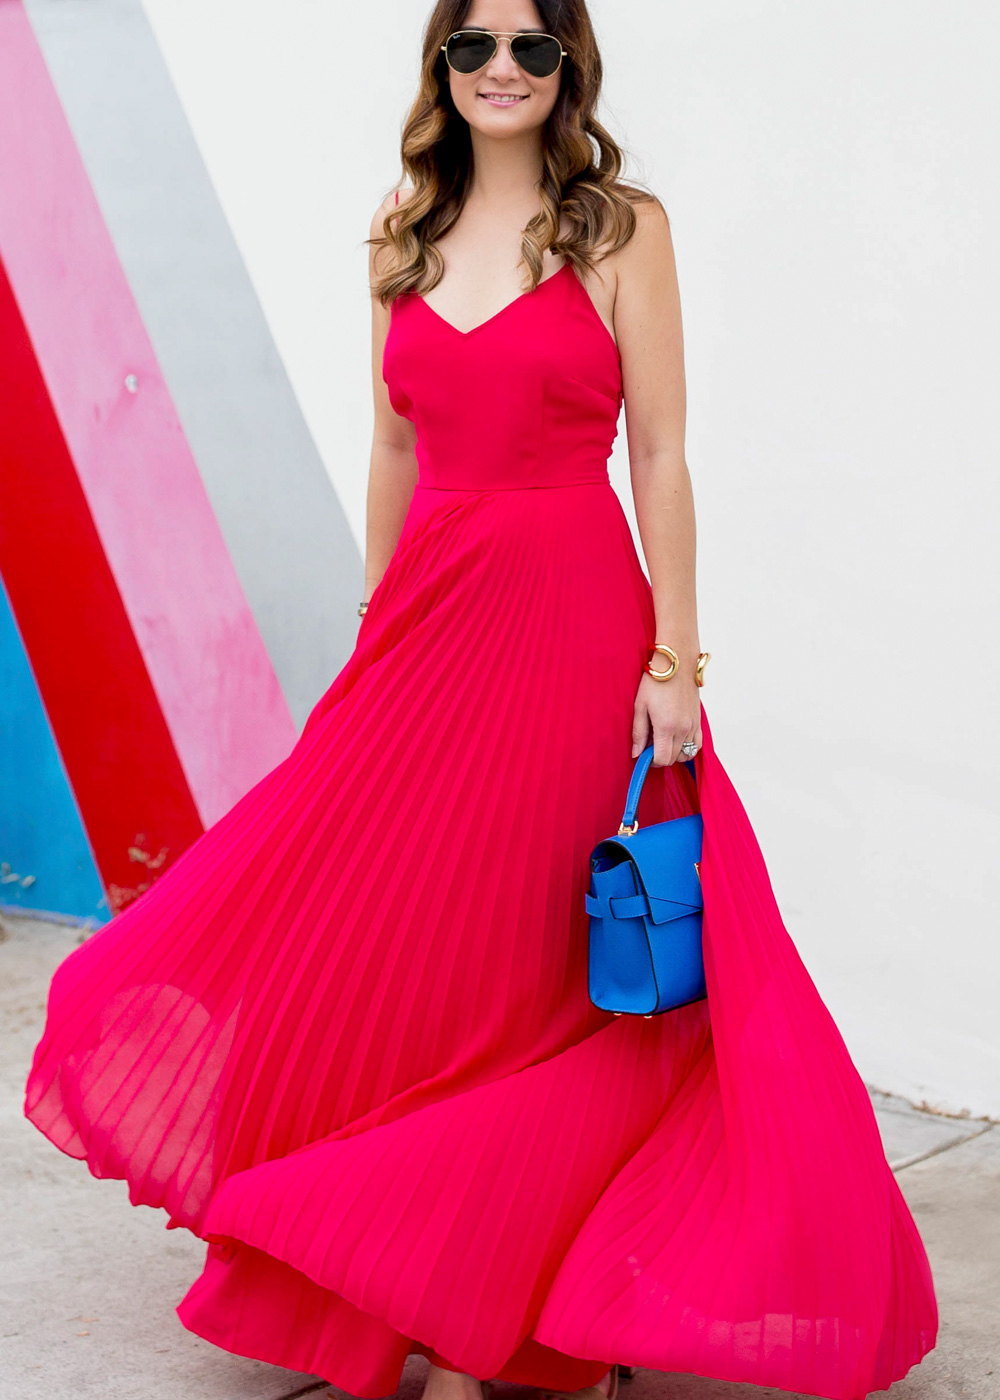 Jennifer Lake Style Charade twirling in an ASOS pink pleated maxi dress, blue Henri Bendel Mini Uptown satchel, at a striped wall in Los Angeles